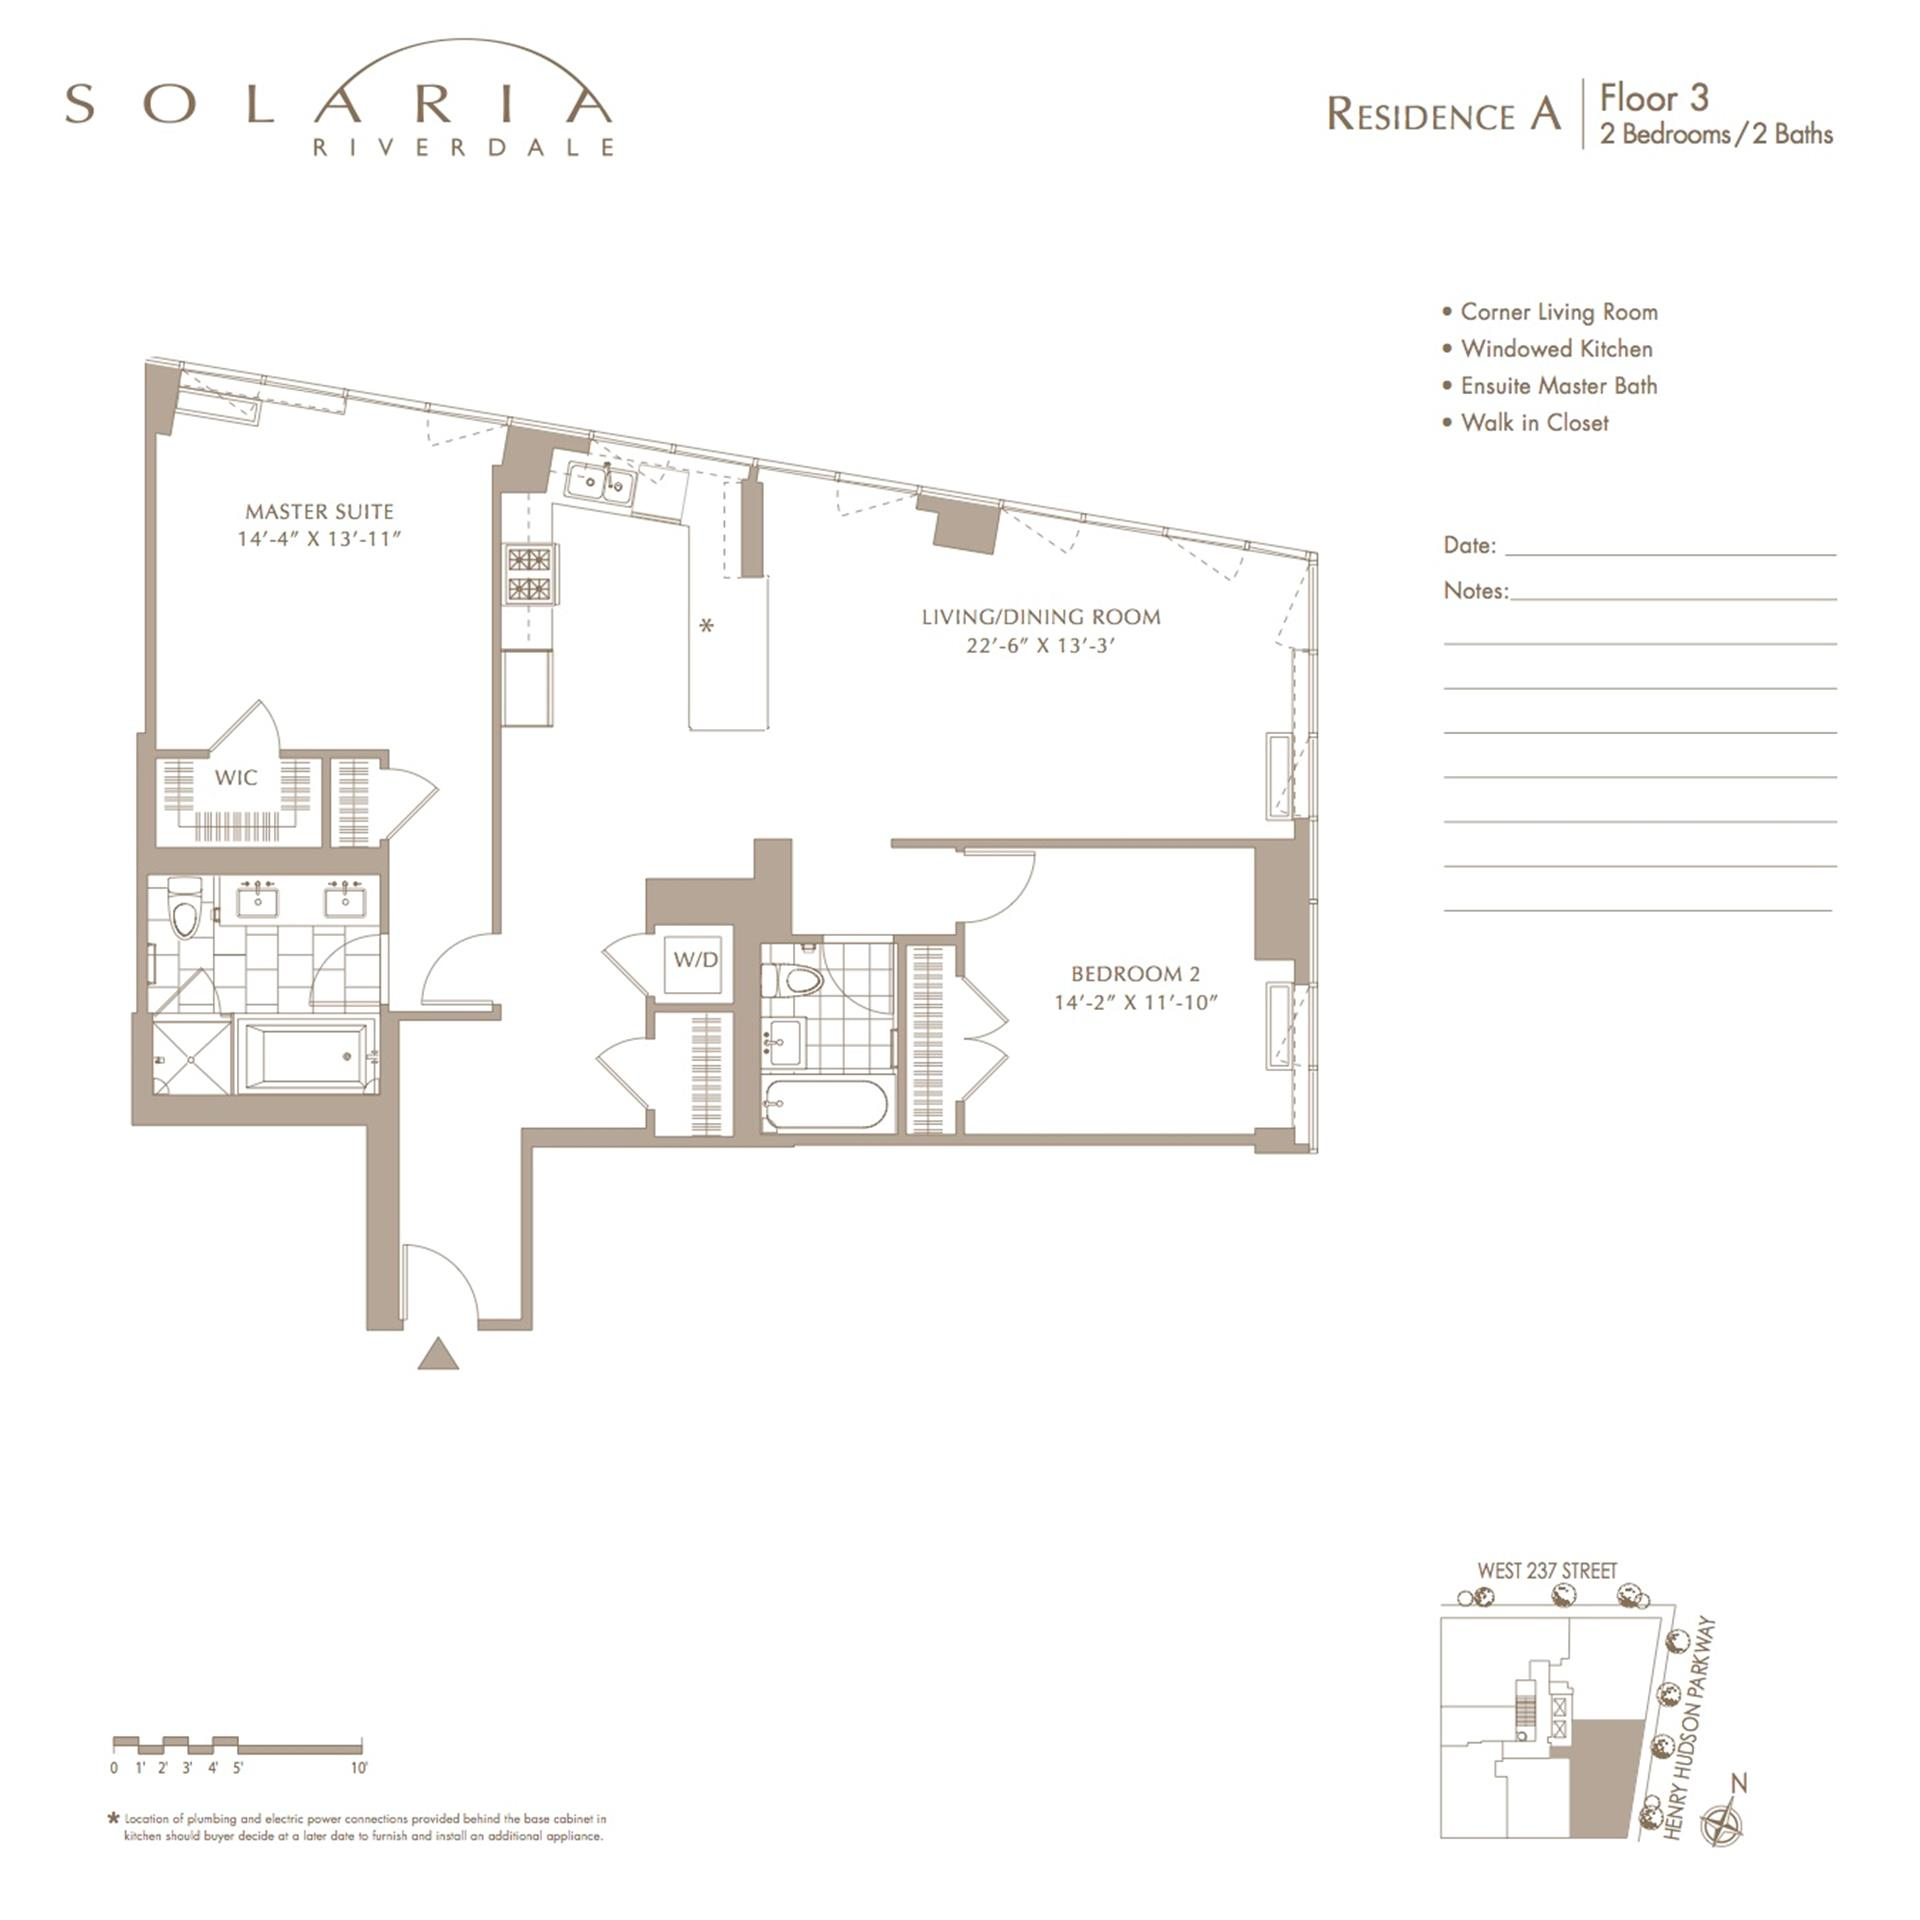 Floor plan of 640 West 237th St, 3A - Riverdale, New York